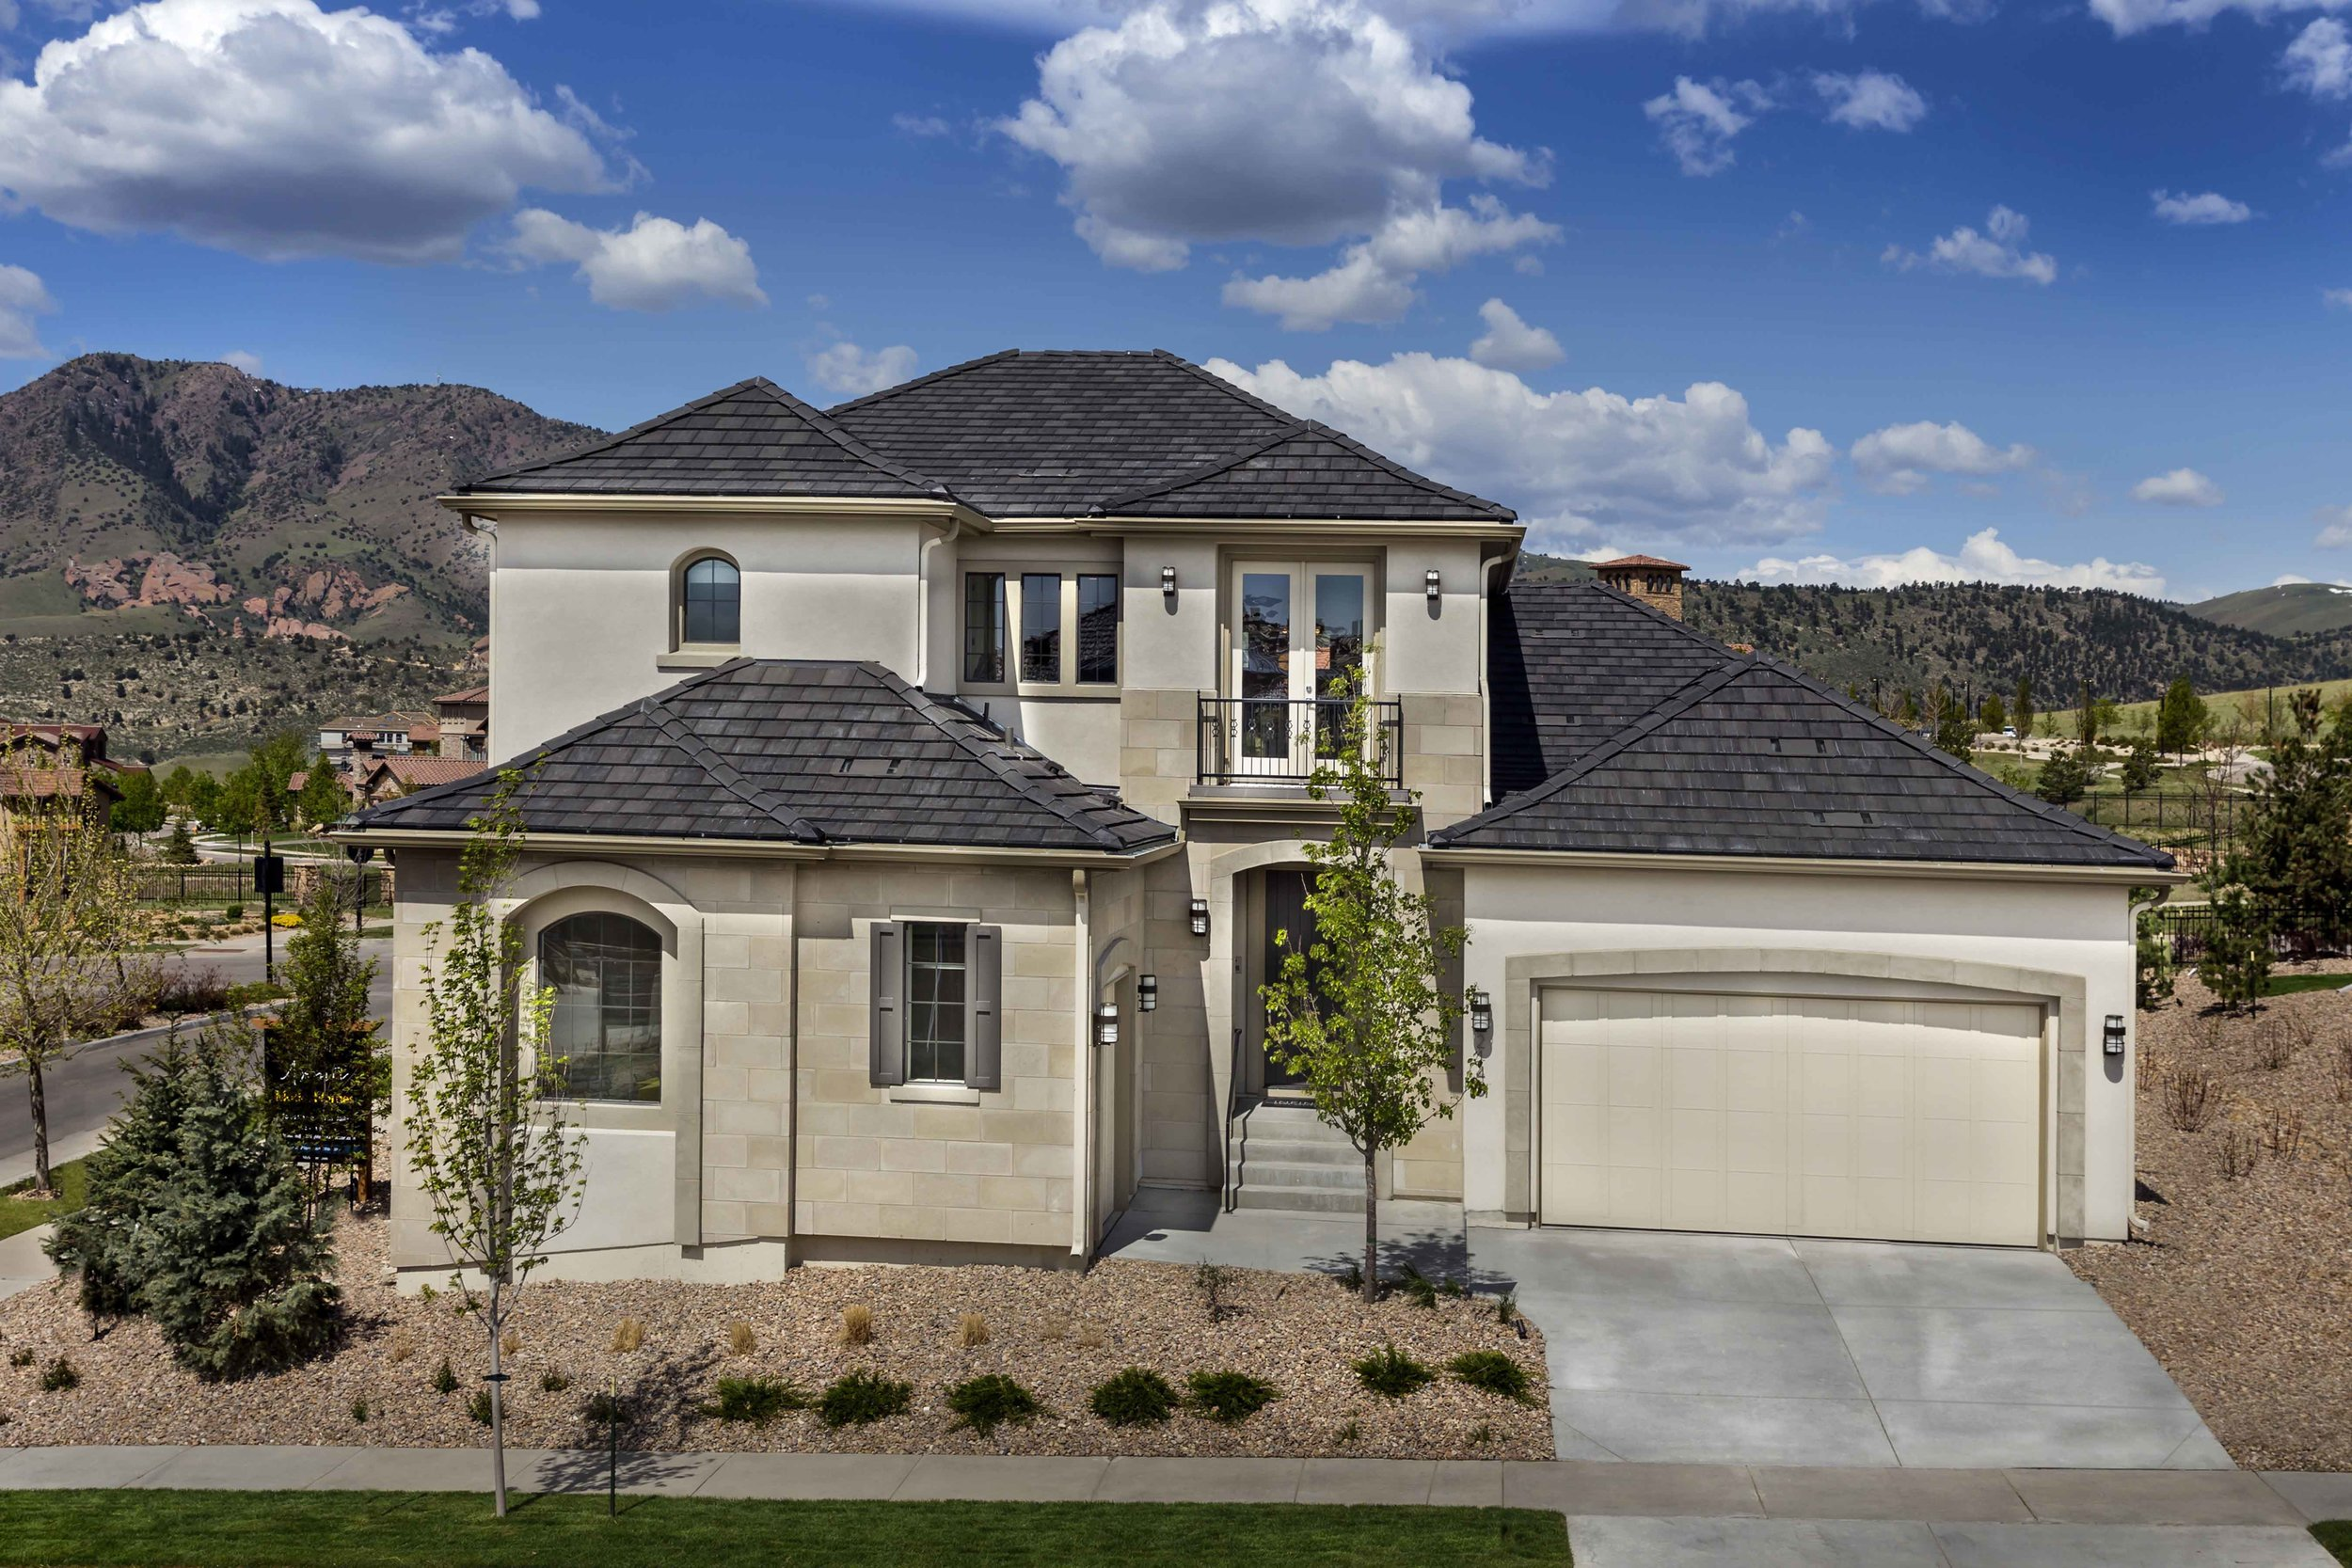 Avanti   | Lakewood, Colorado    AWARDS  +  2015 Nationals Silver Award  for Best Architectural Design of a Single Family Home 3,001-3,500 Sq. Ft.  +  2014 Gold Nugget Award of Merit  for Best Single Family Detached Home Between 3,000-3,499 Sq. Ft.